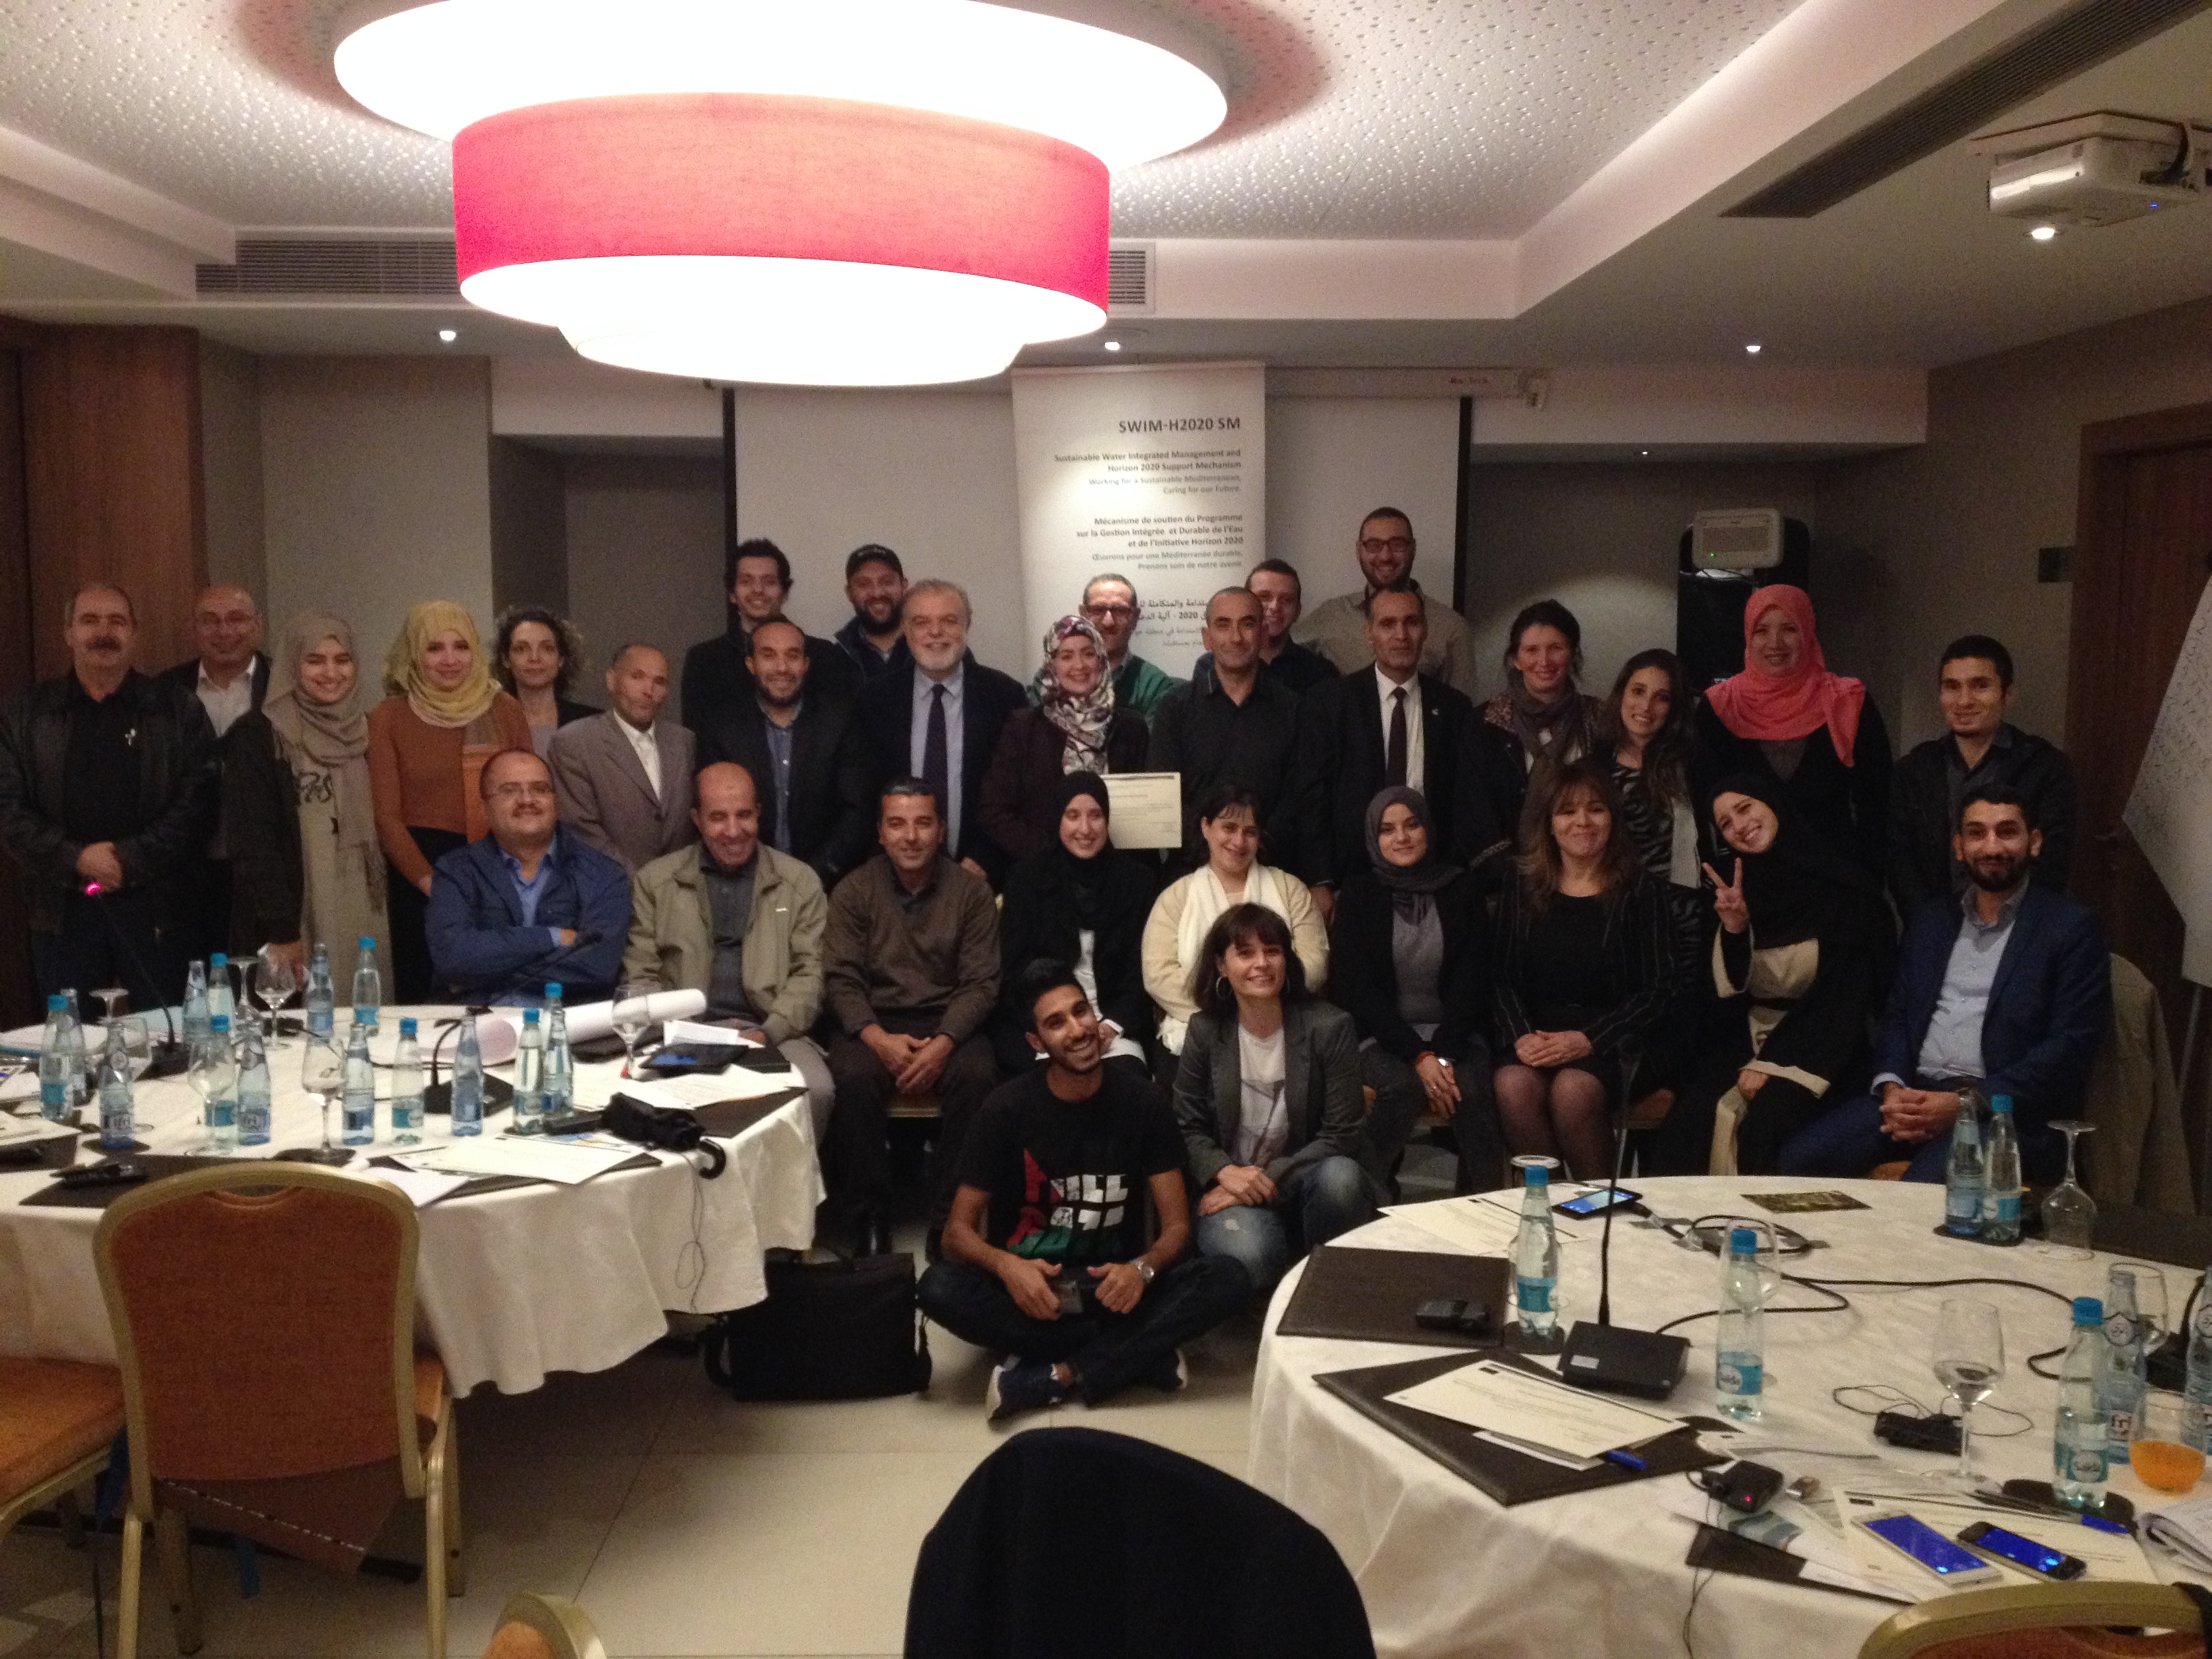 12-13 November 2017, Algiers, Algeria – SWIM-H2020 SM Training on Awareness and Education of Non-Conventional Water Resources